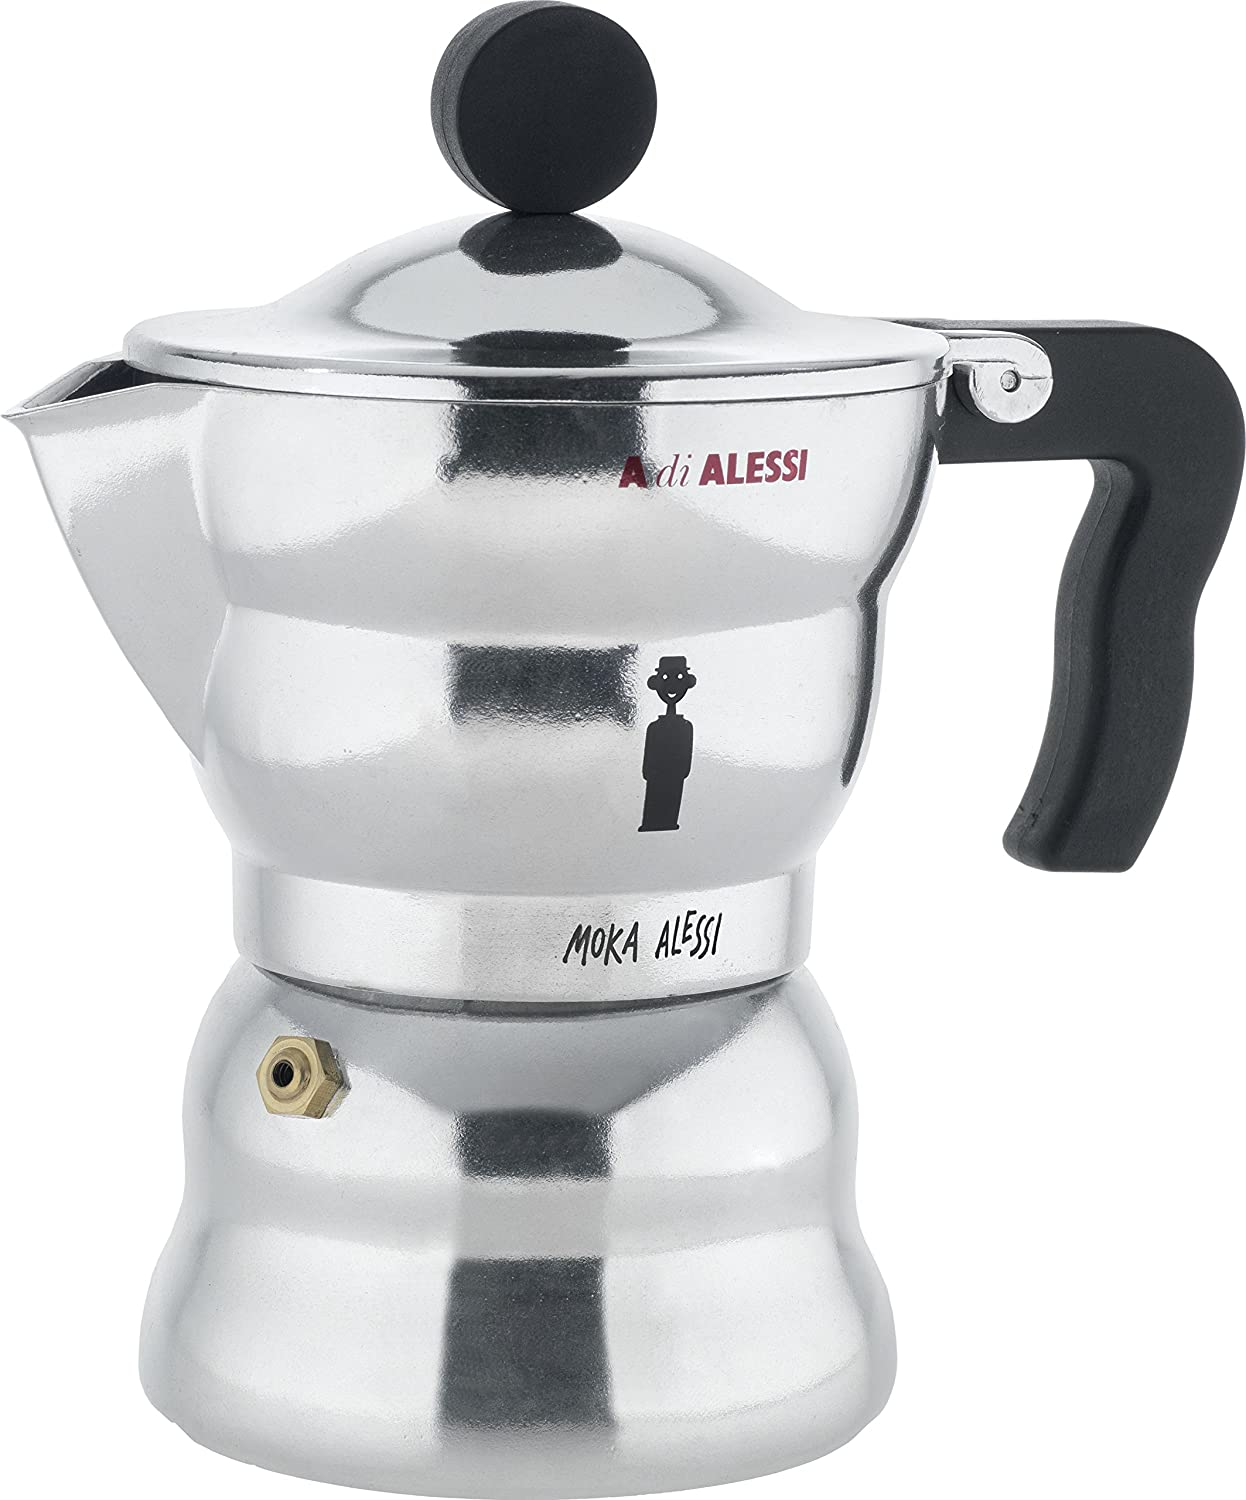 Alessi 3-Cup Moka Espresso Coffee Maker with Thermoplastic Resin Handle and Knob, Black AAM33/3